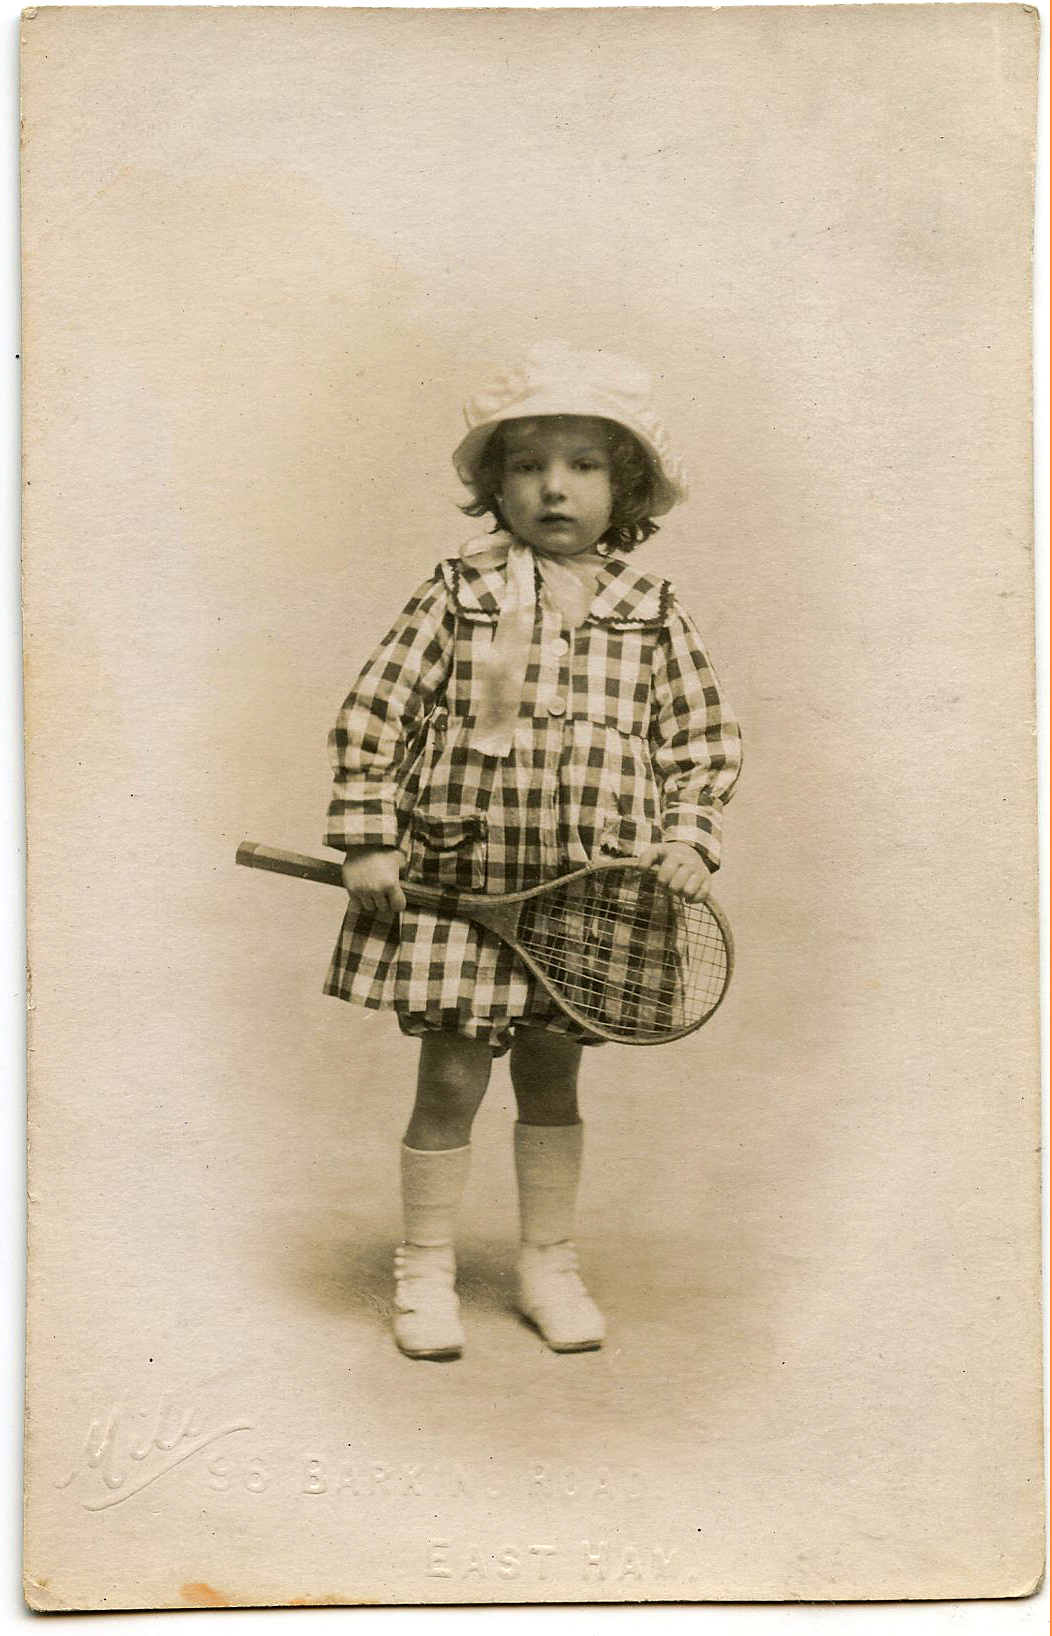 children tennis photograph sweet racket antique child graphics thegraphicsfairy